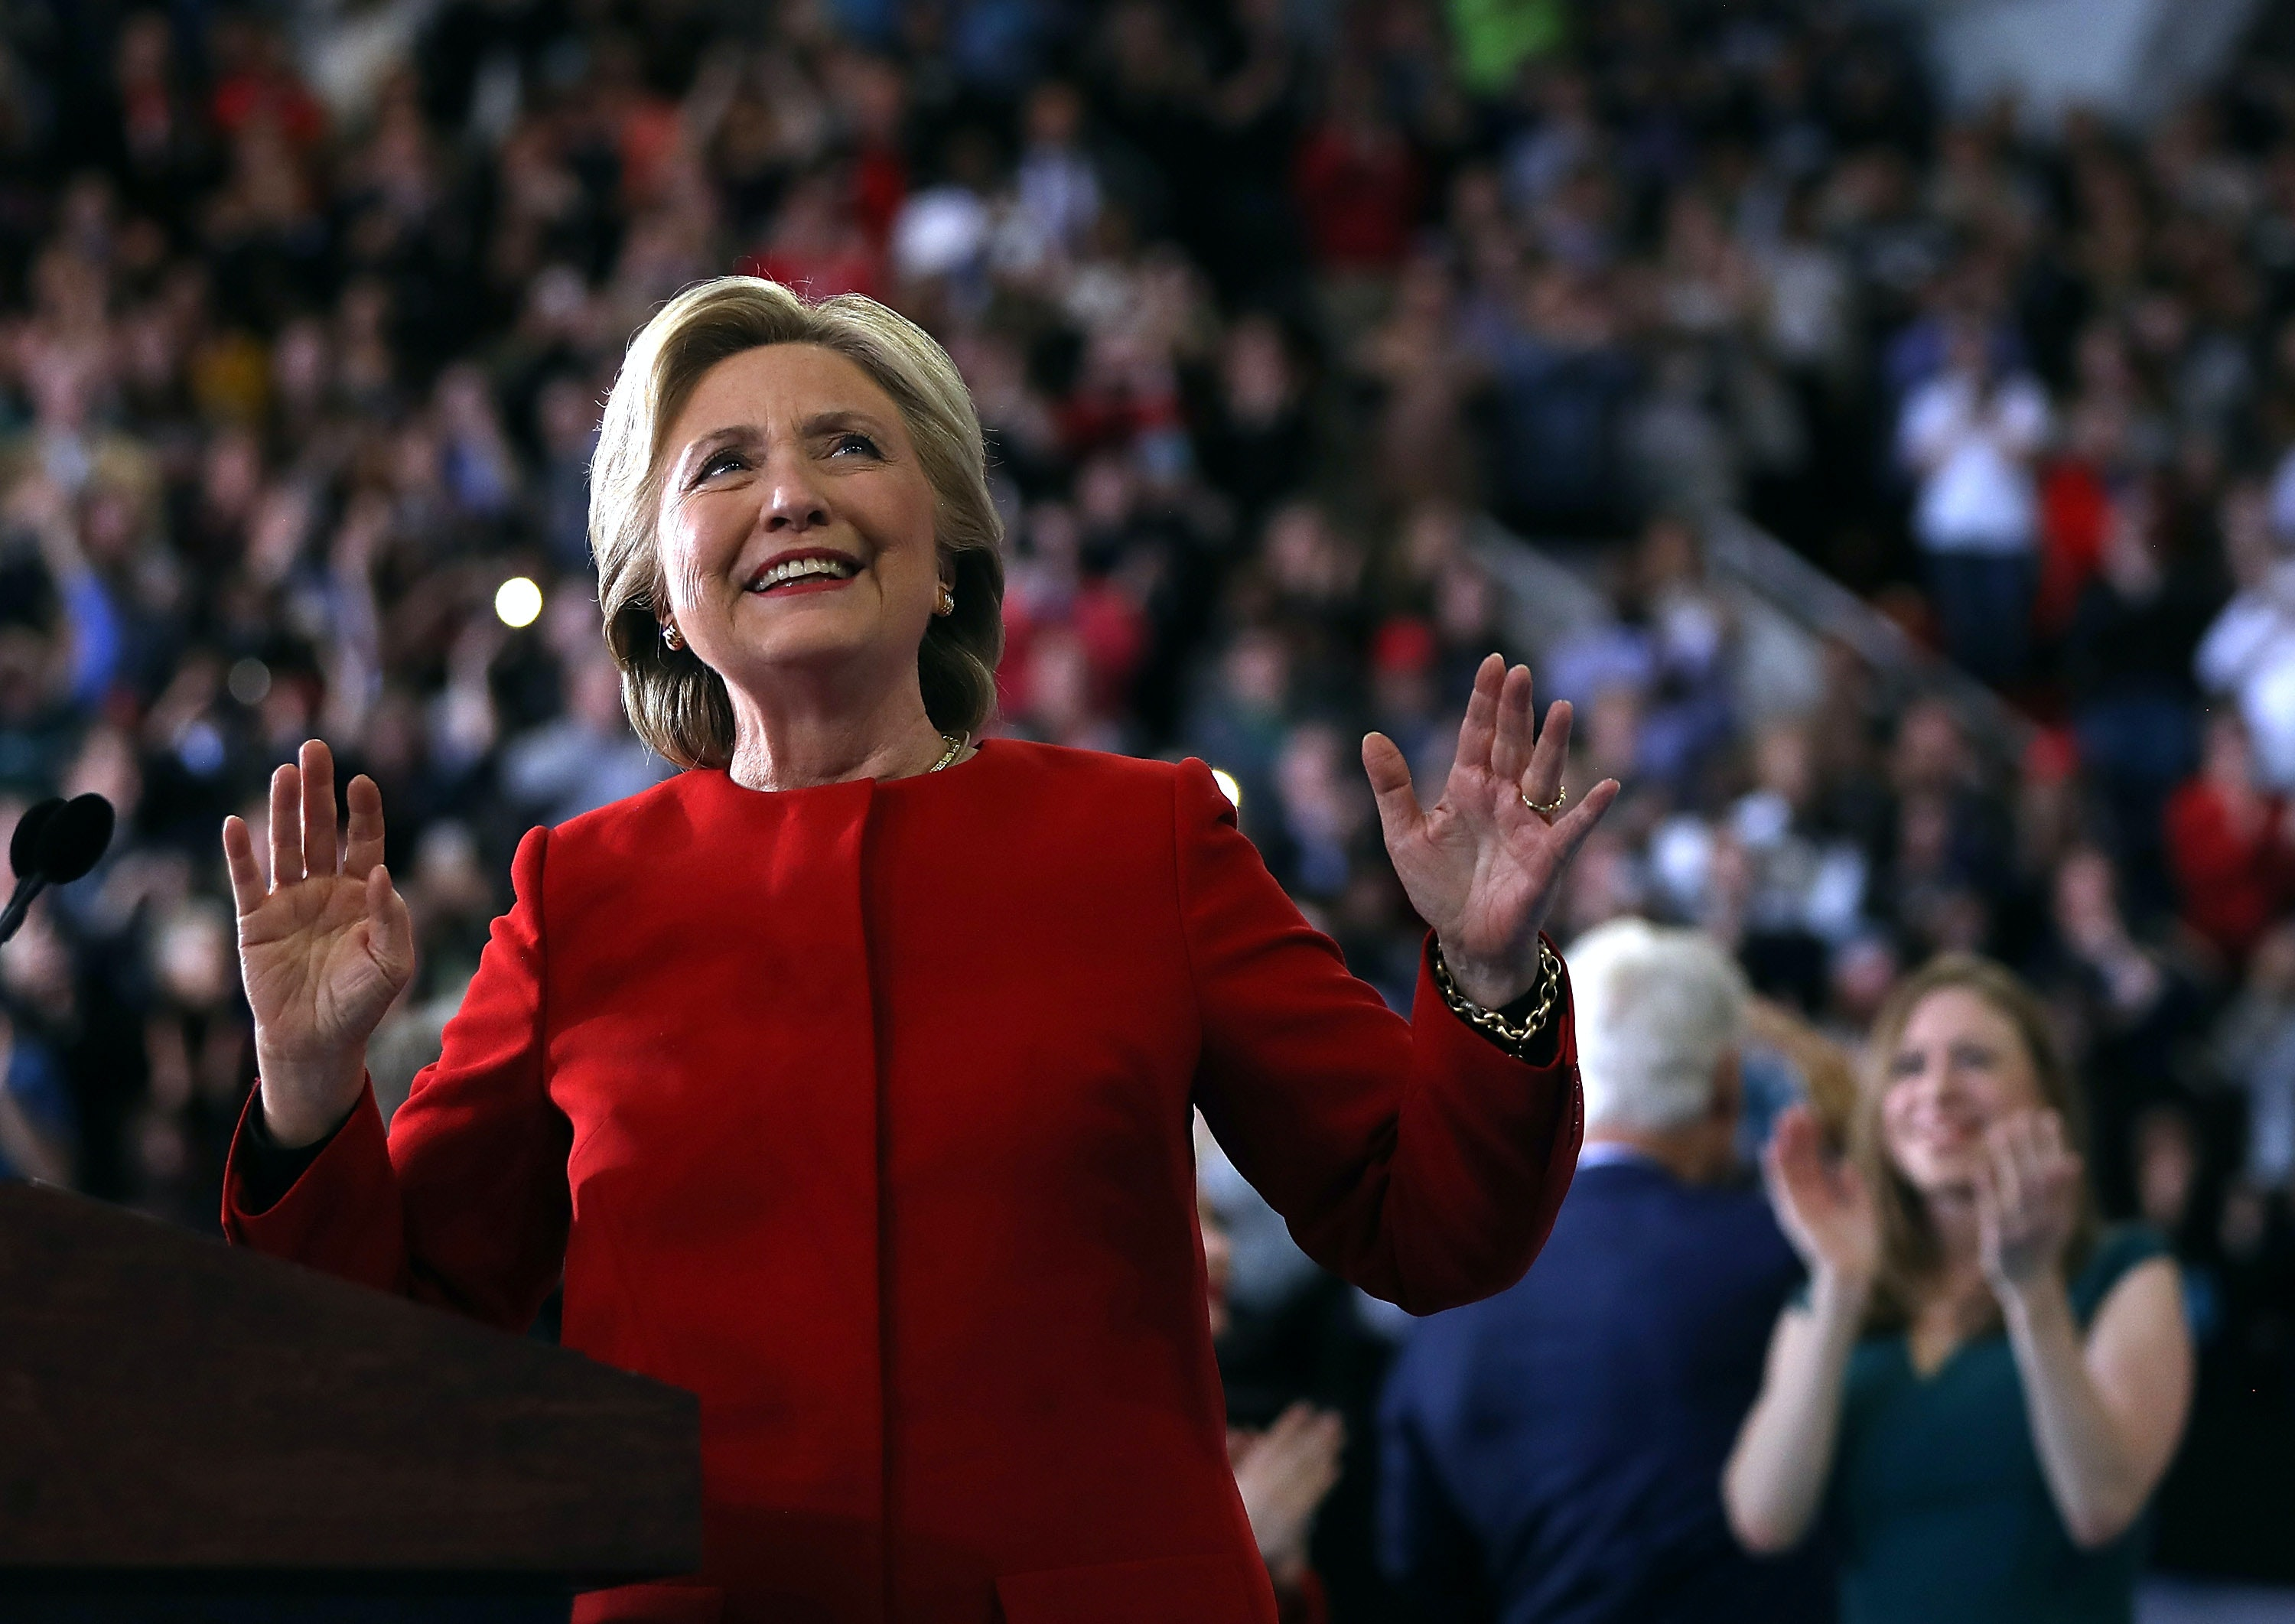 Hillary Clinton: Upbeat, Smiling, And Sprinting To The End